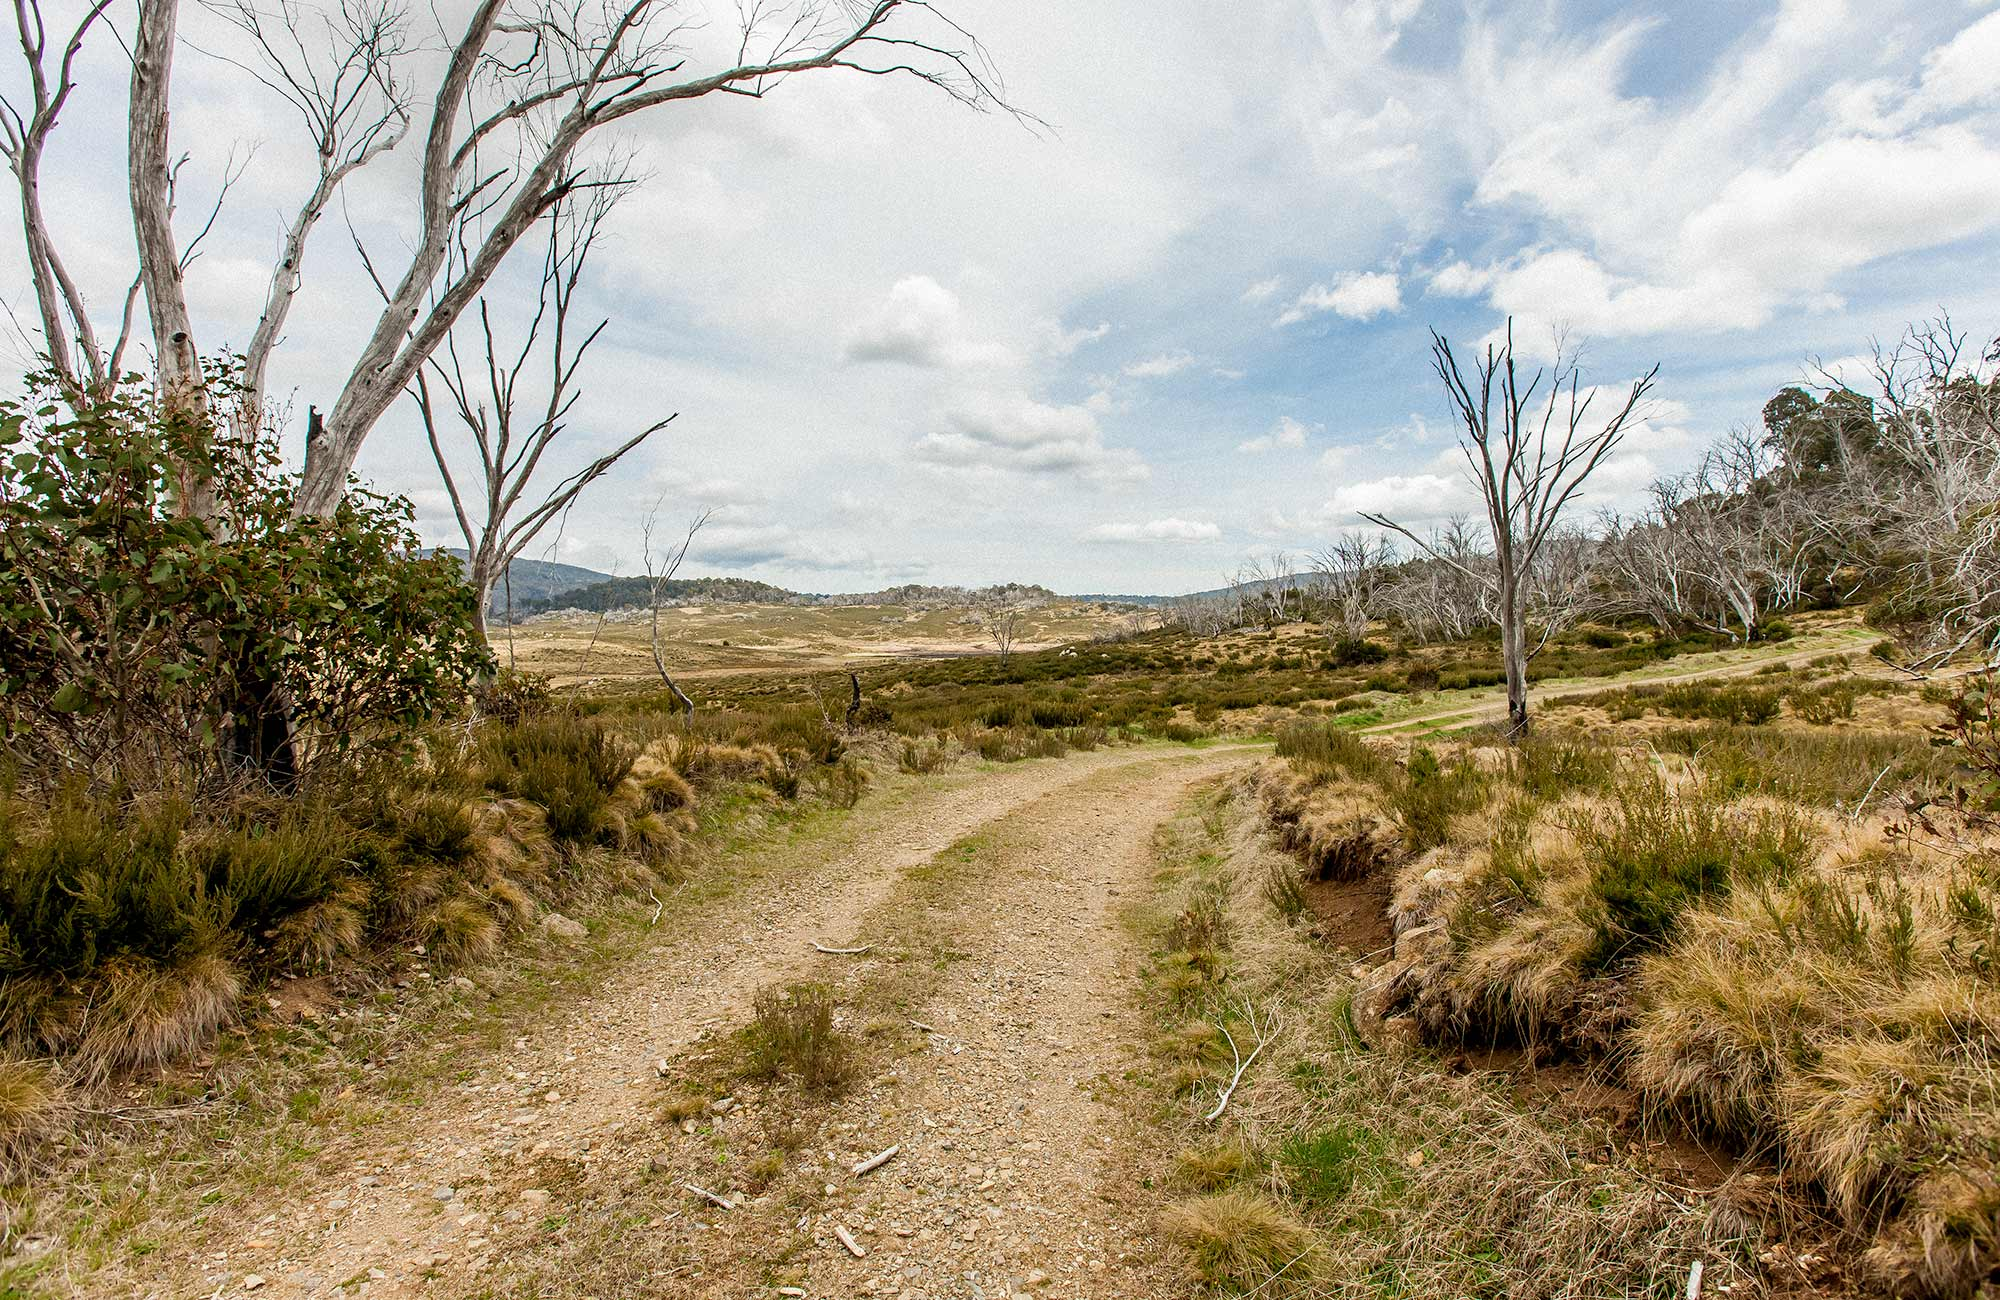 Patons Hut walk track, Kosciuszko National Park. Photo: Murray Vanderveer